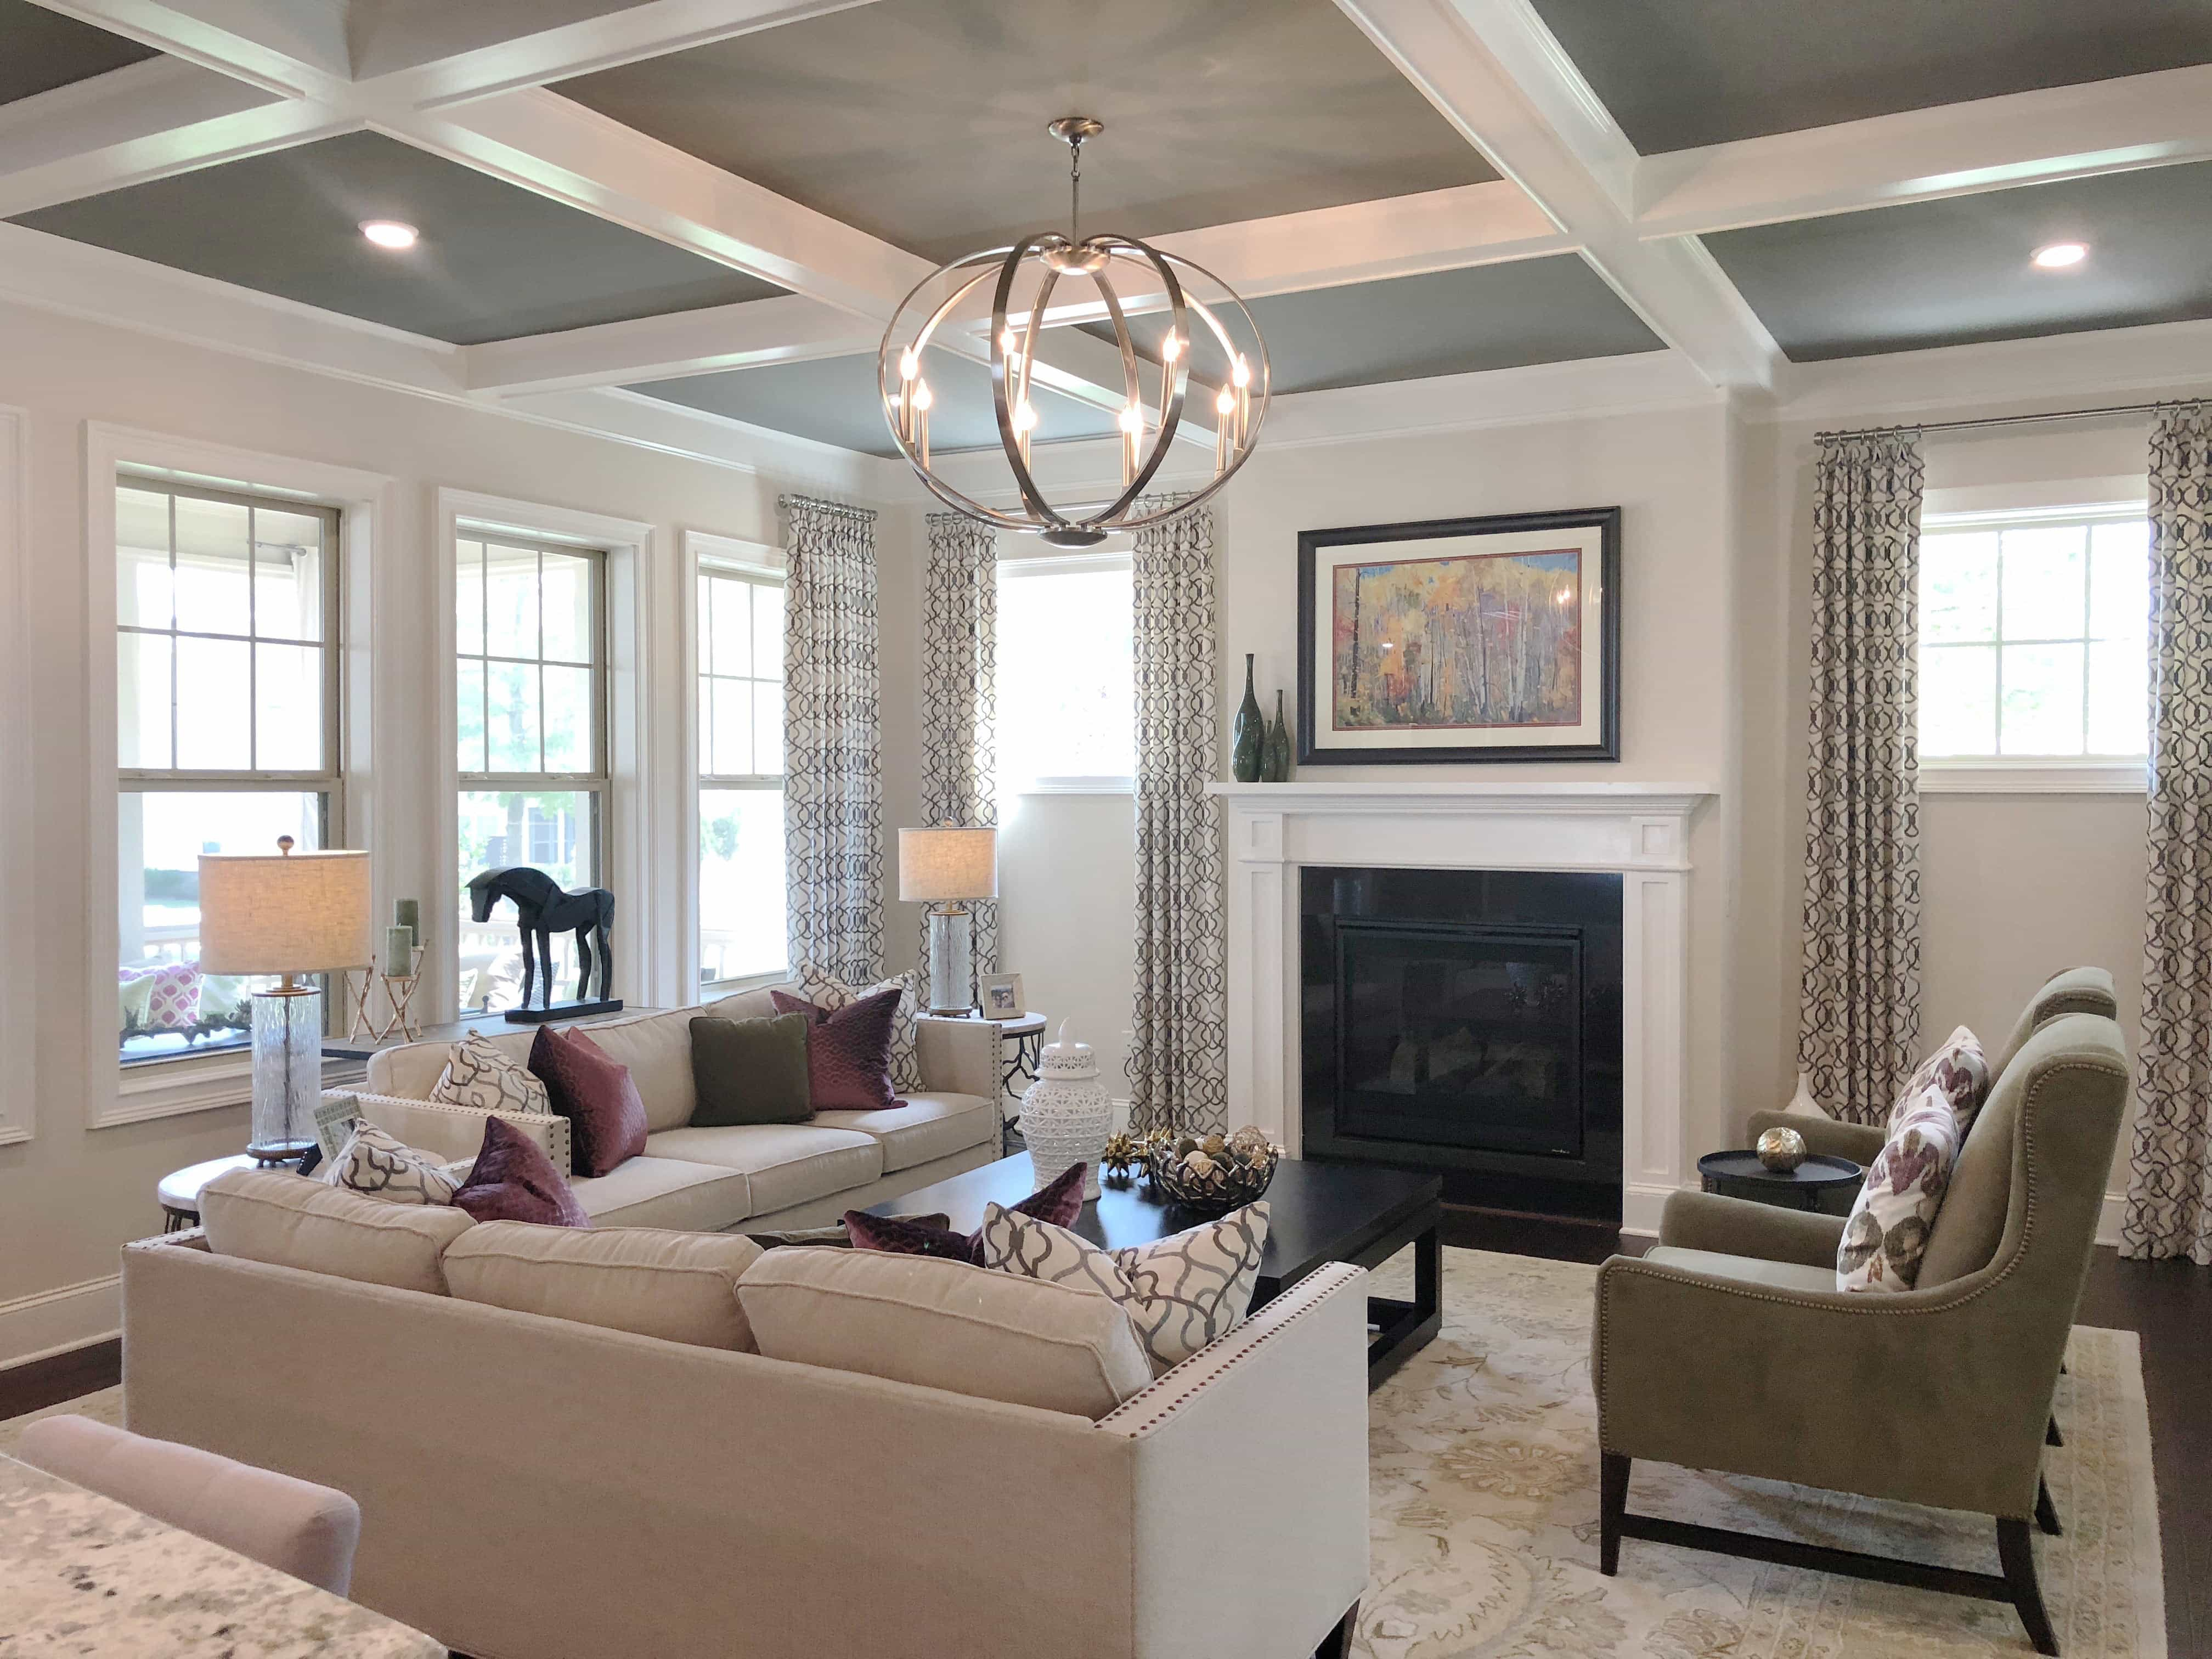 home design, interior design company, best home staging in Raleigh, home stager, model home stager, Best model home stager in Raleigh & Cary, home staging, interior designer, interior decorator, Cary, Apex, Holly Springs, Durham, Raleigh North Carolina, NC